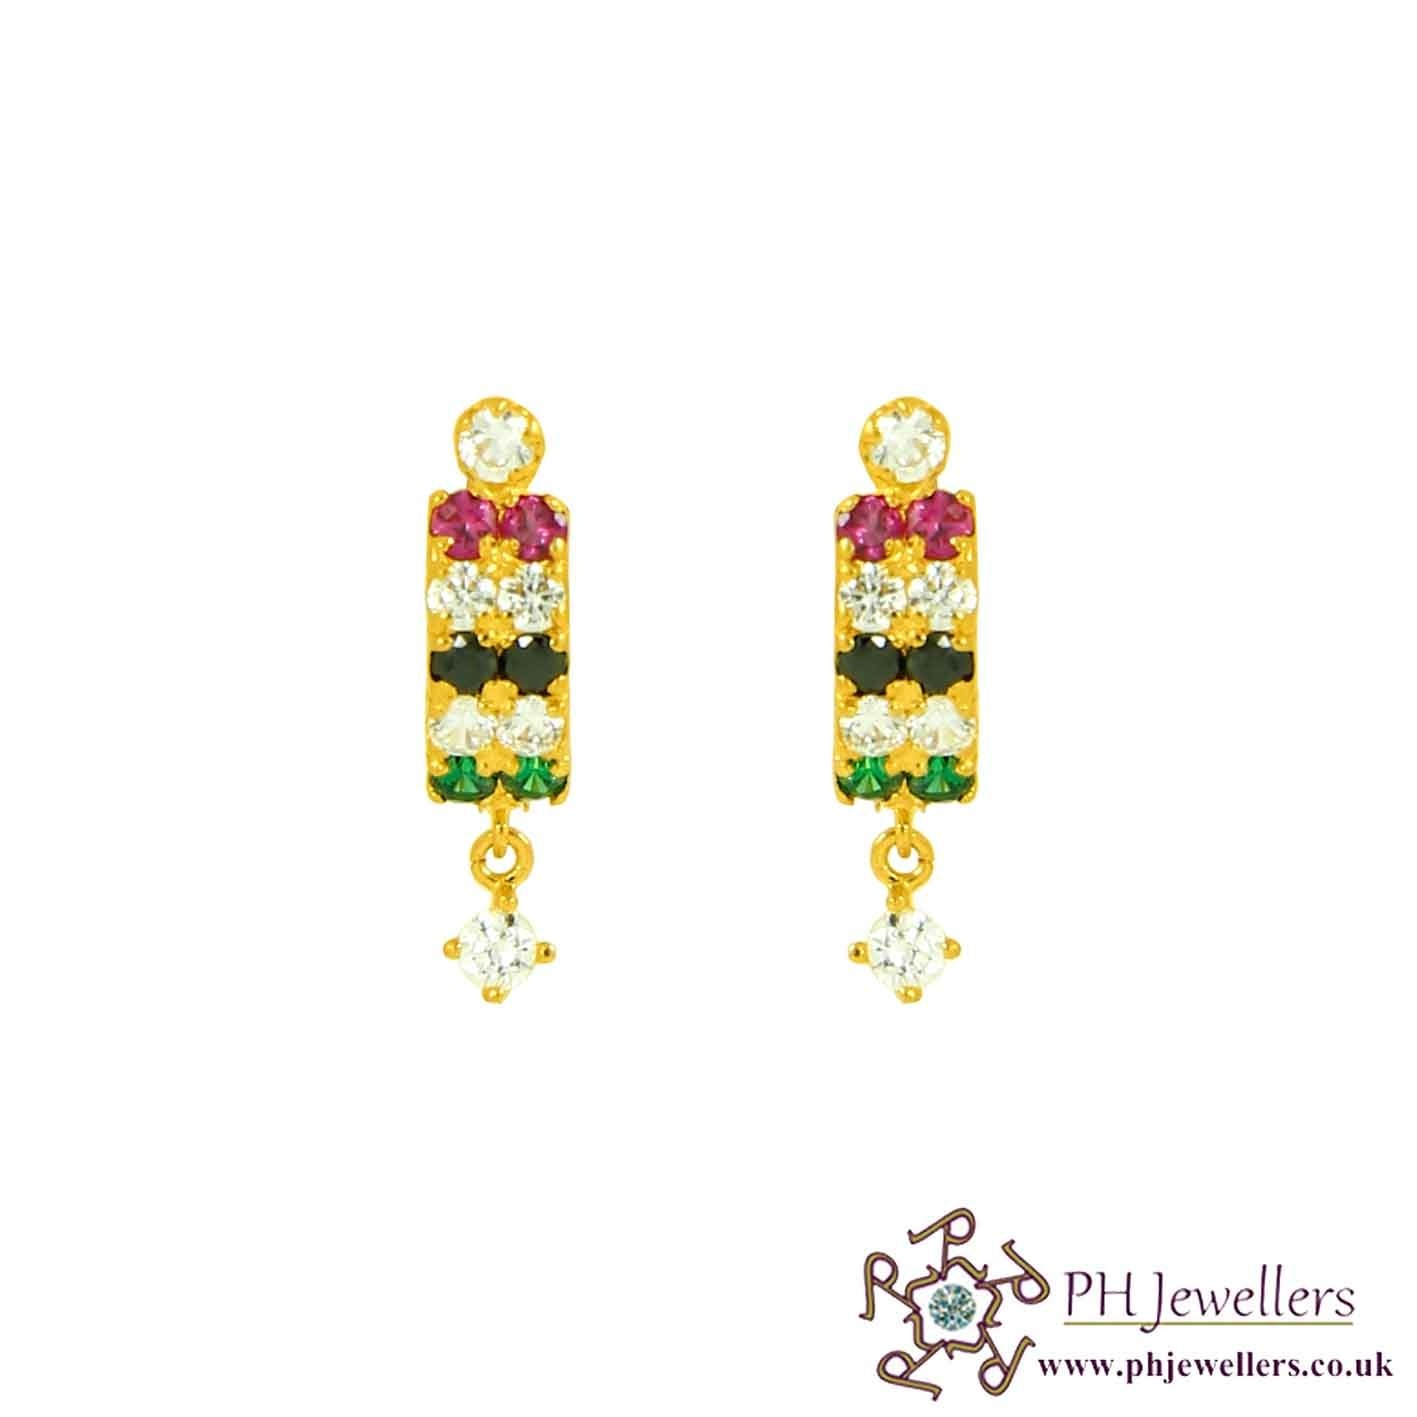 22ct 916 Hallmark Yellow Gold Clip-on Earring with Multi Colour CZ CE38